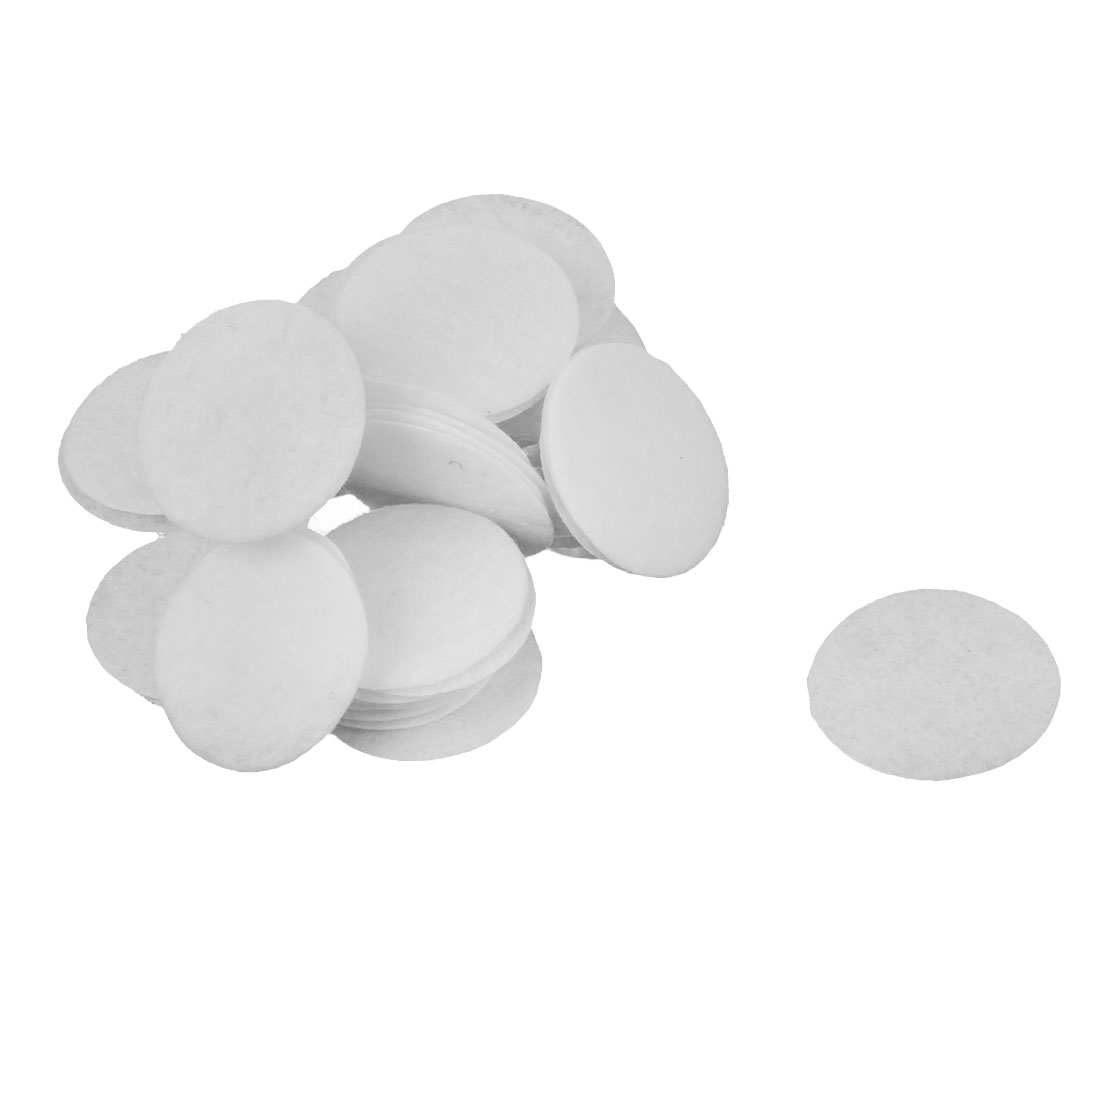 DIY Handcraft Accessories Round Circle Pad Patches White 25mm Dia 50pcs